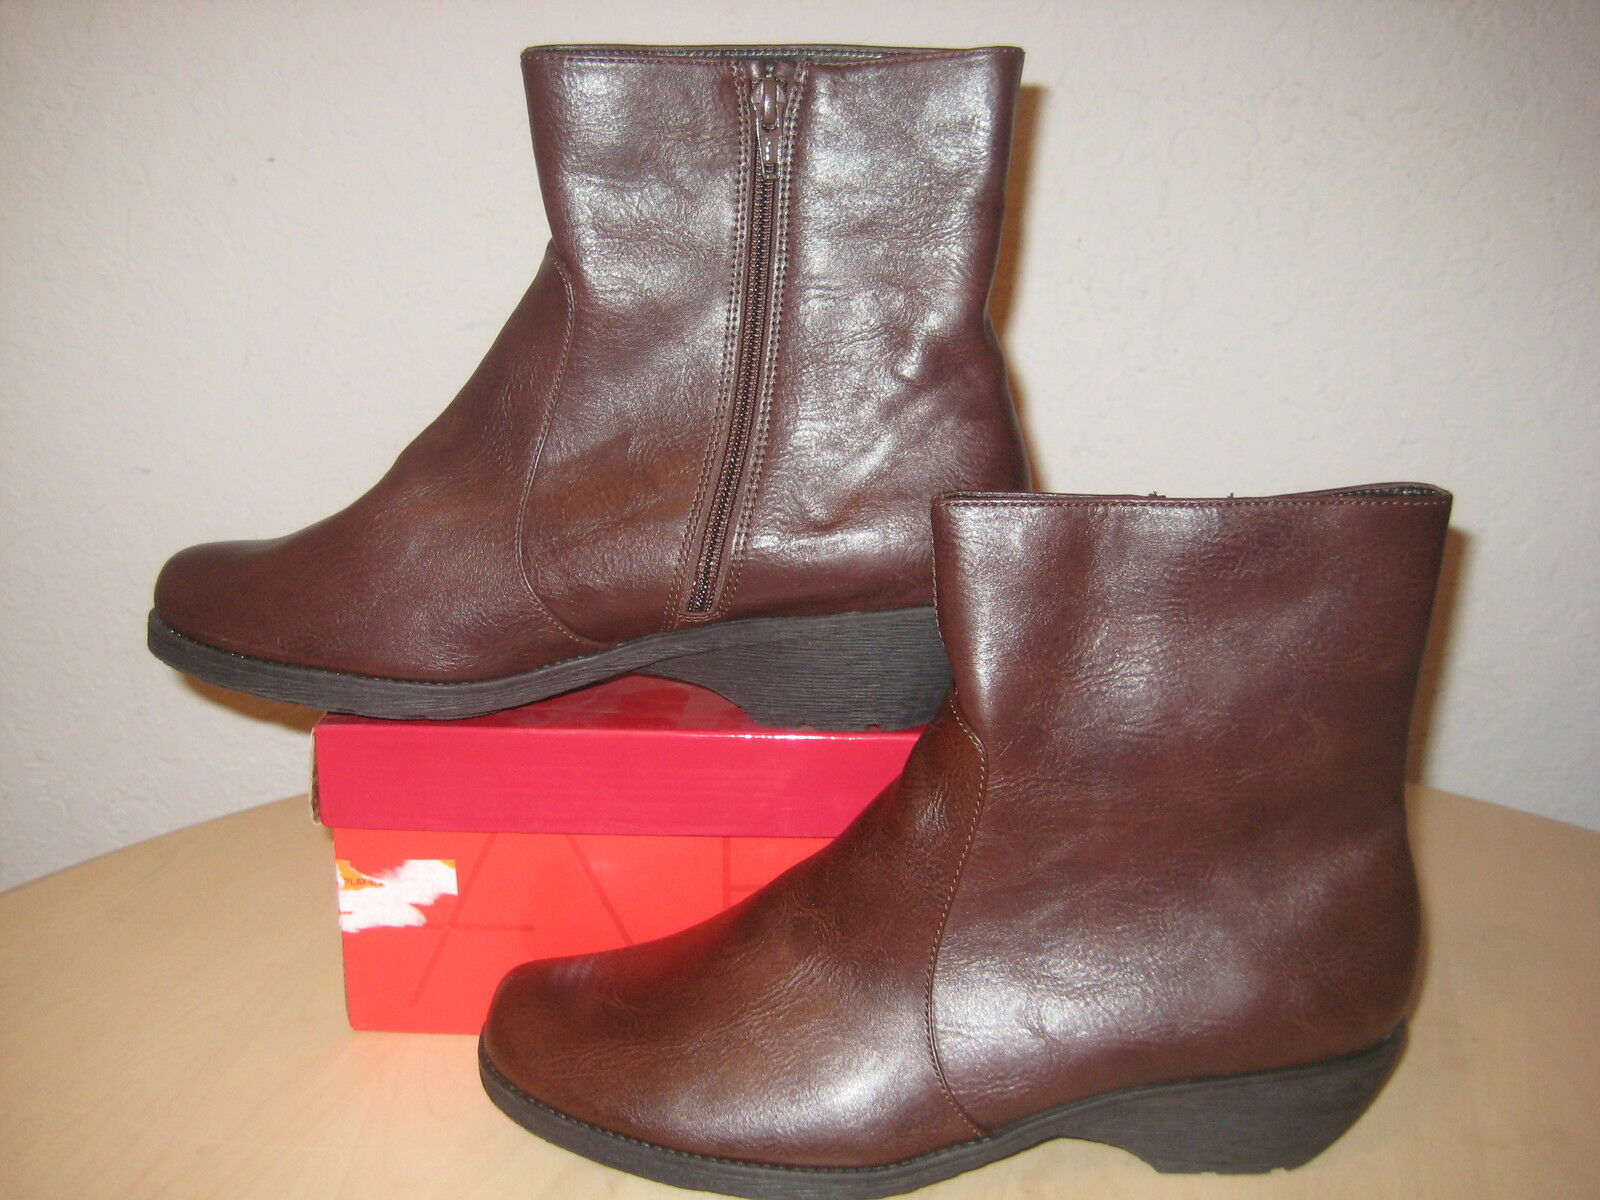 Aerosoles Size 10 M SPEARTINT Dark Brown Ankle Boots Womens New shoes